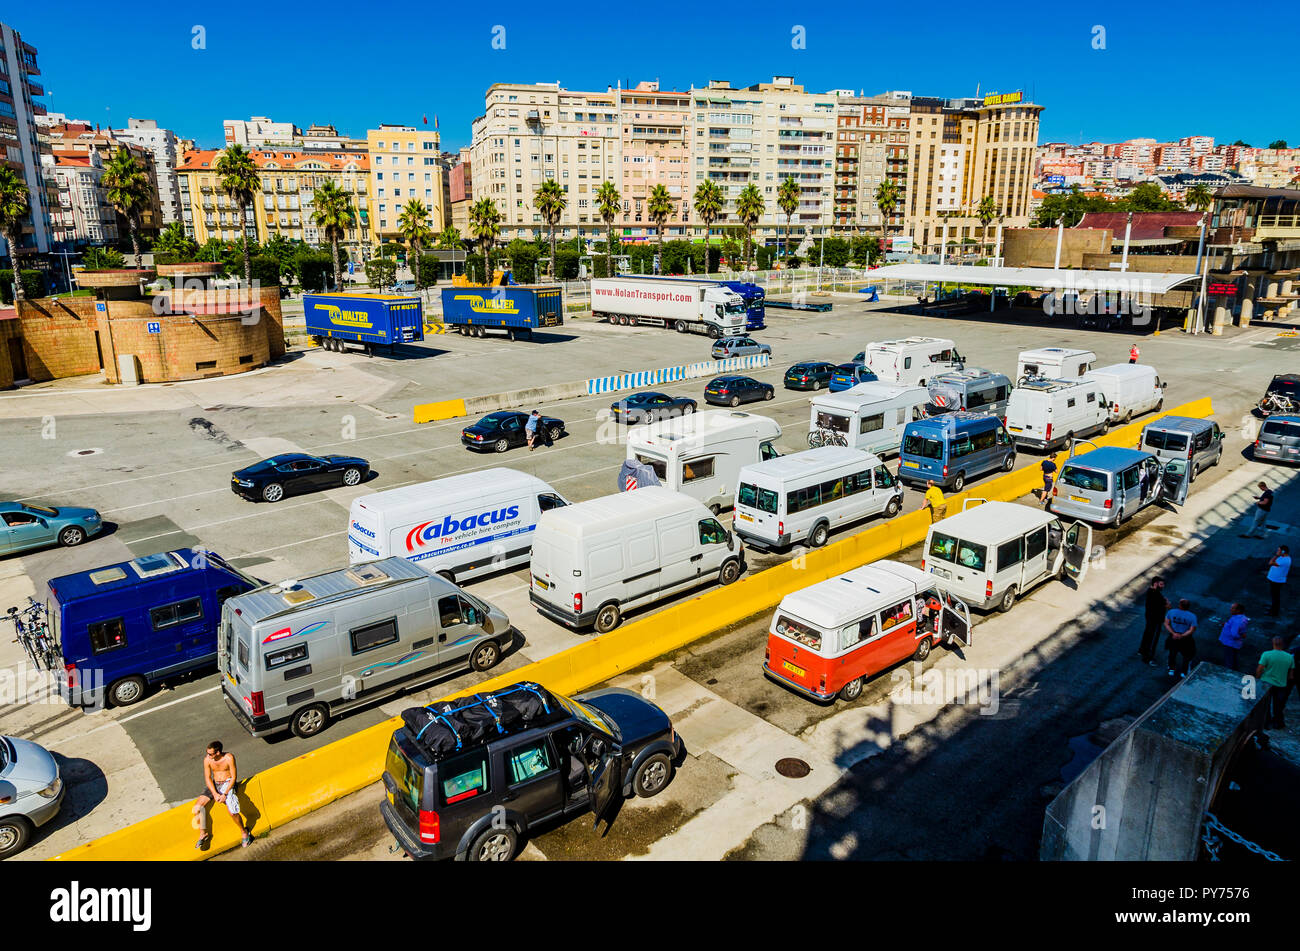 Parking in the port of Santander before boarding a ferry. Santander, Cantabria, Spain, Europe - Stock Image